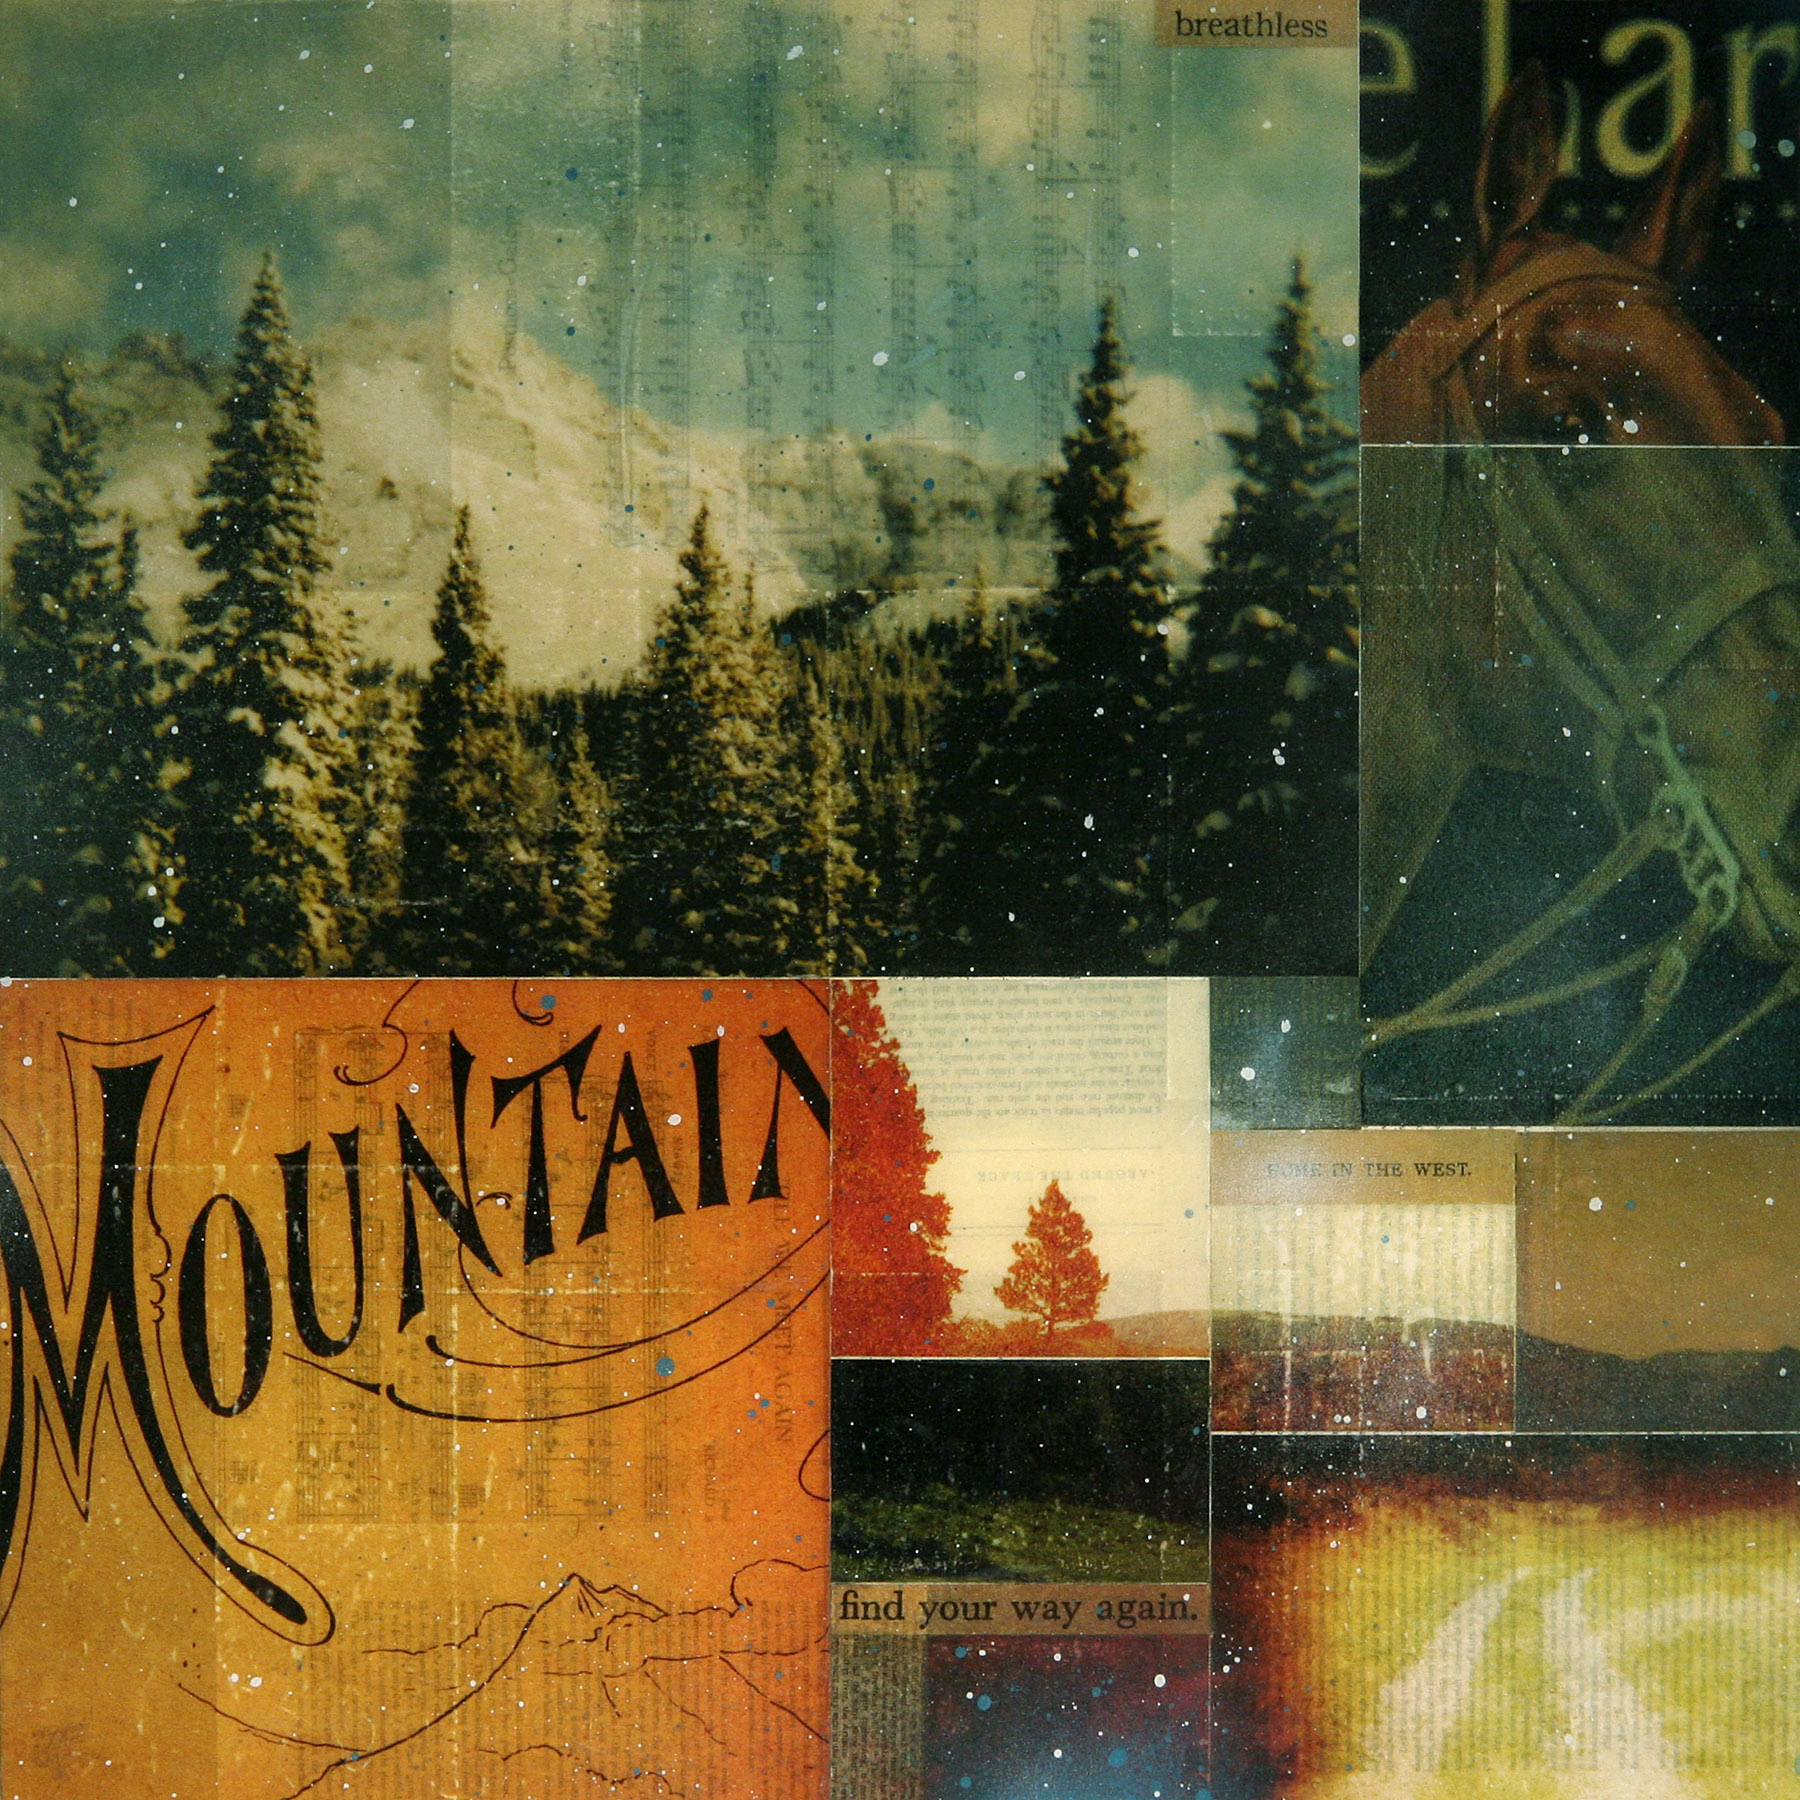 Mountain (Find your way again)